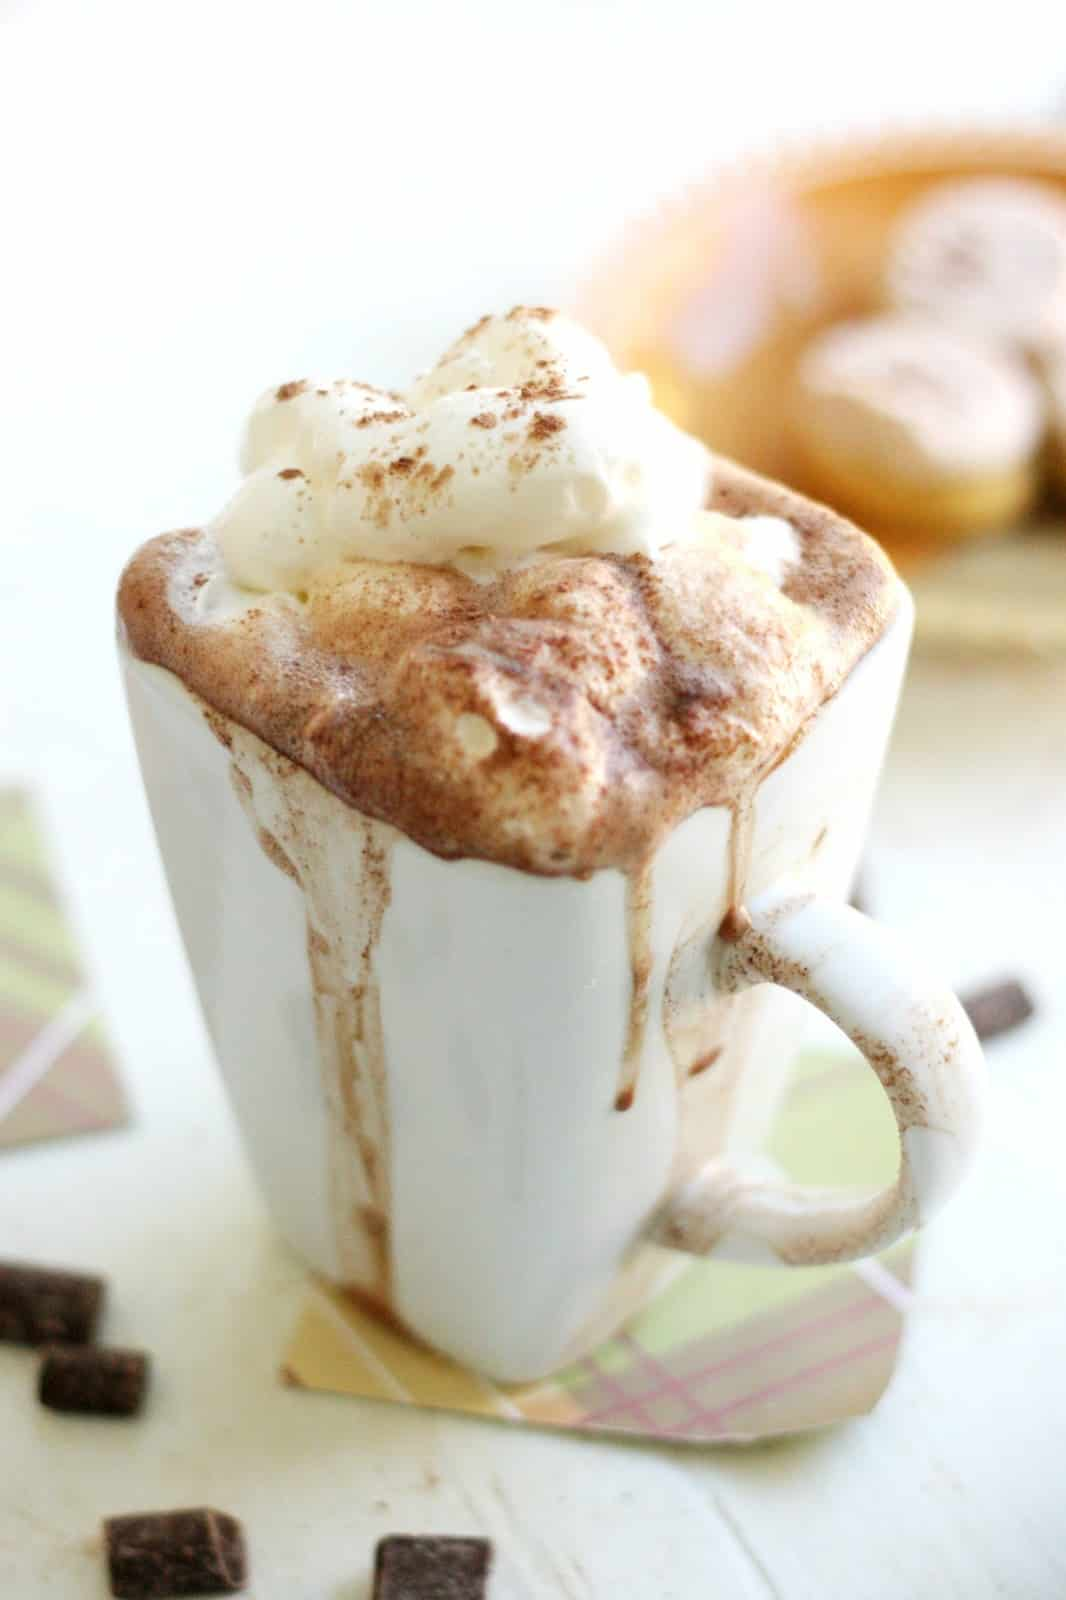 Creamy Hot Chocolate Recipe for a Fabulous Winter